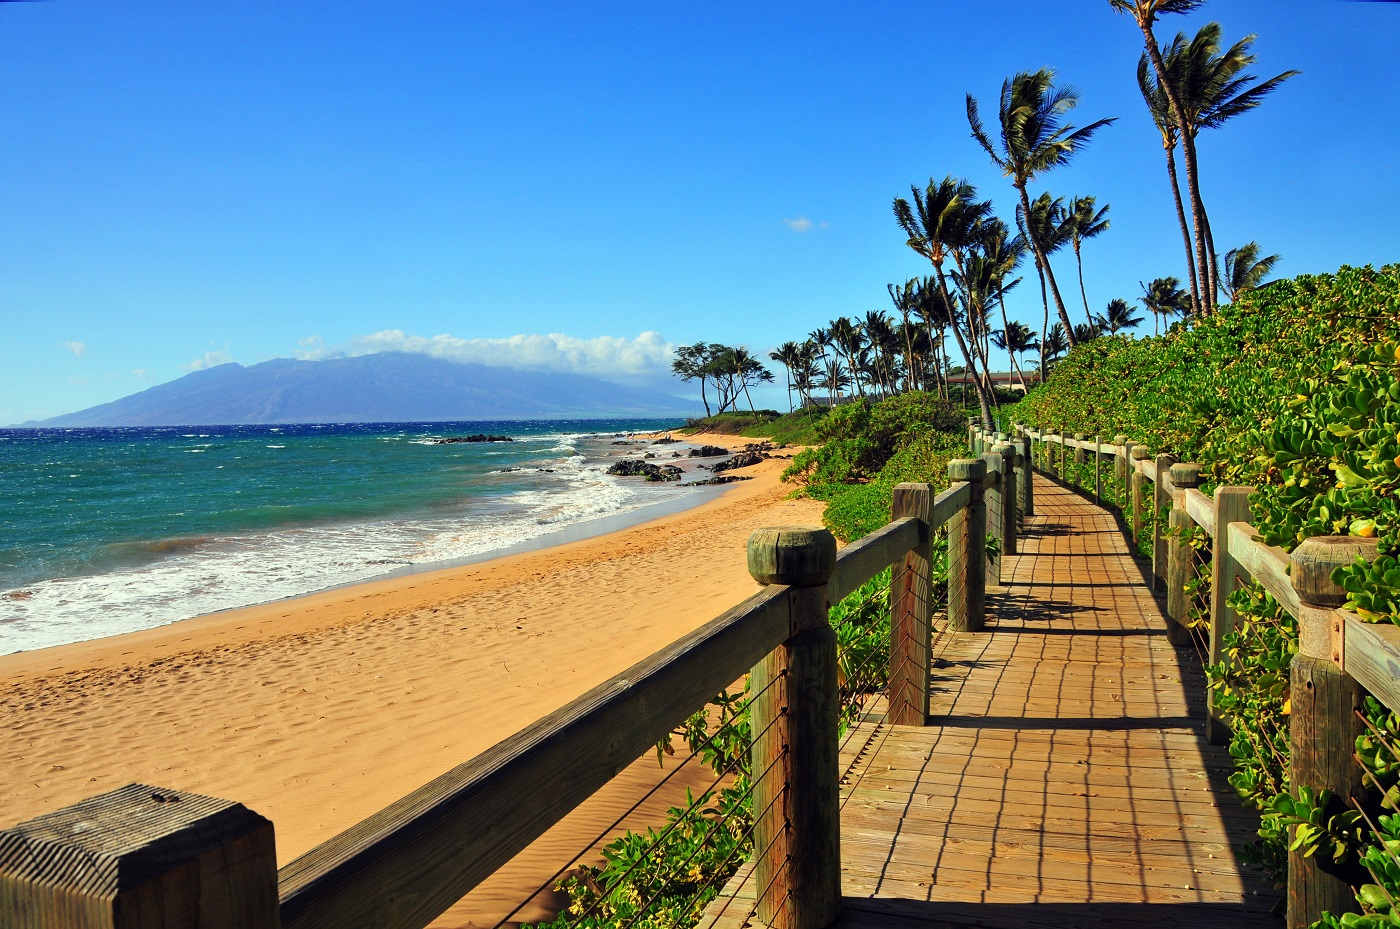 Wailea in South Maui is known today for its glorious coastlines, posh resorts, dive havens, world-class golf fairways, and exciting local cuisine.